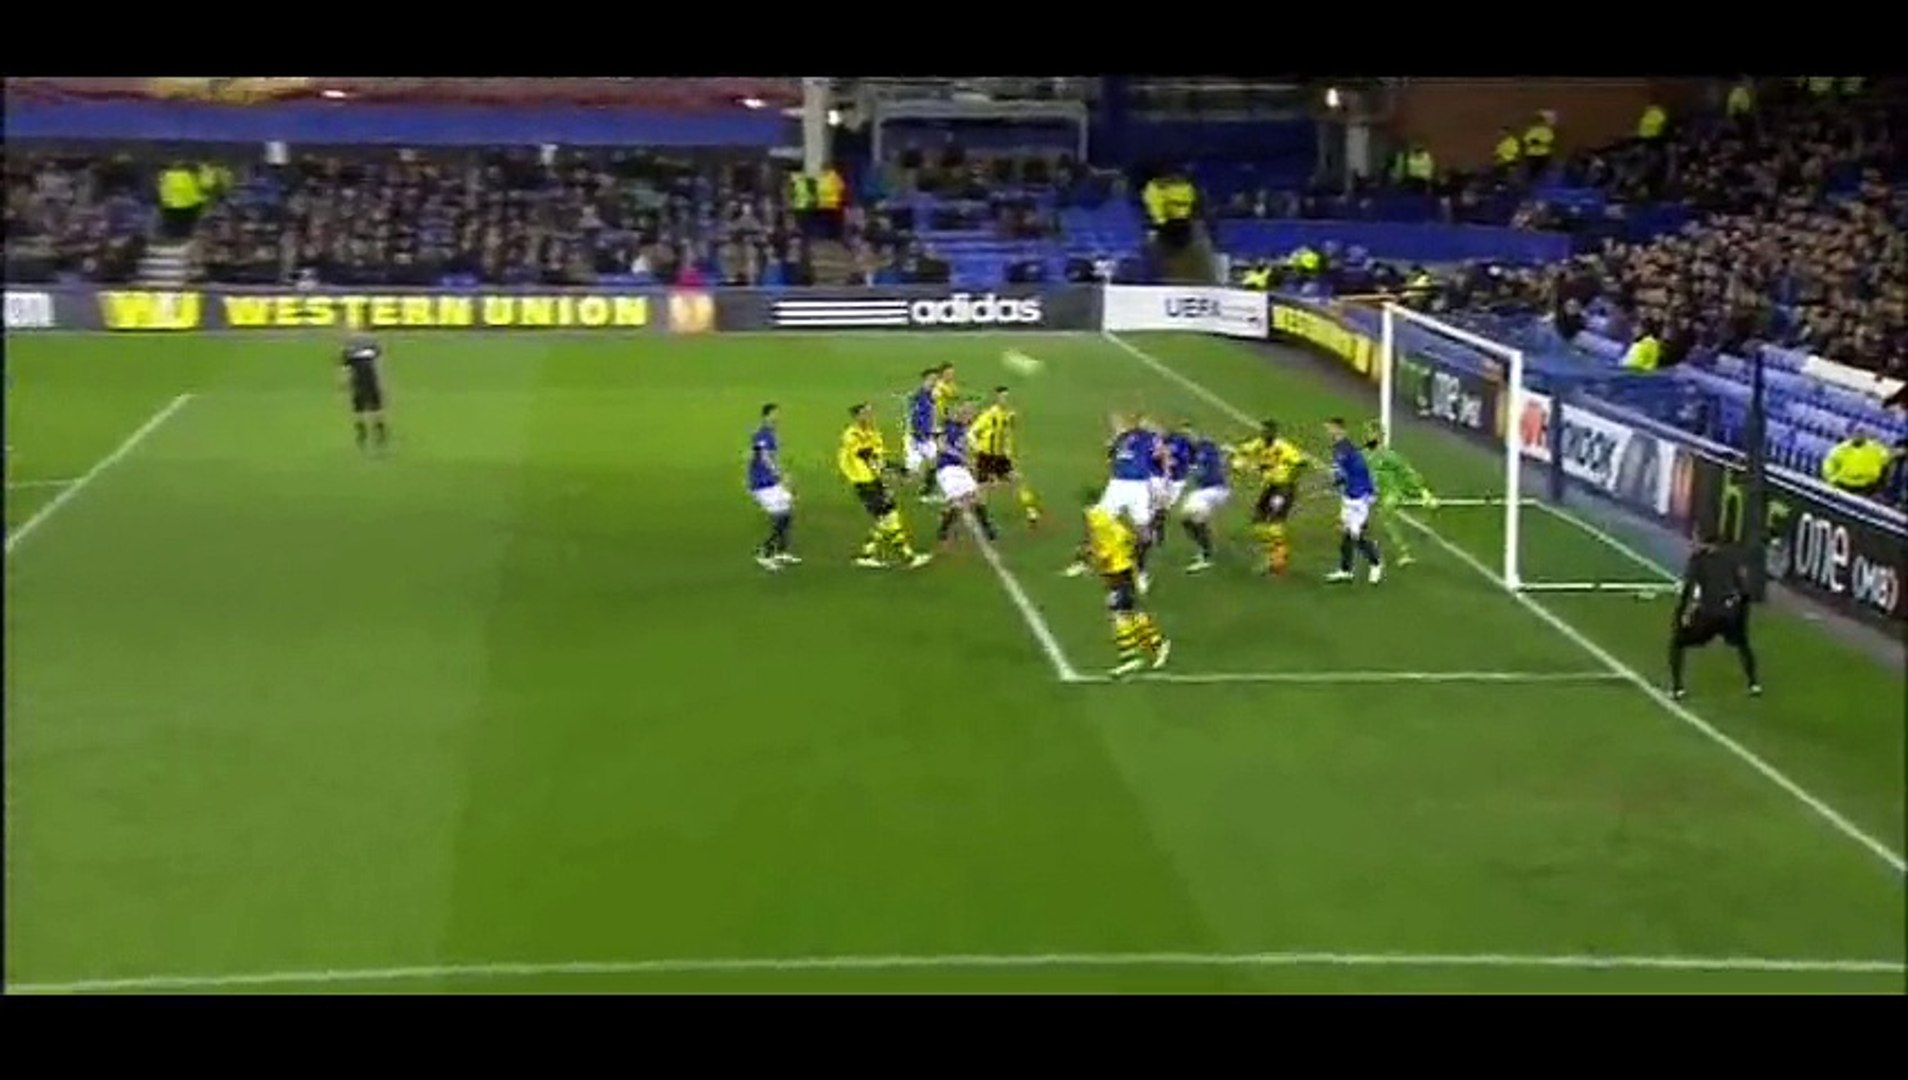 Goal Sanogo - Everton 0-1 Young Boys - 26-02-2015